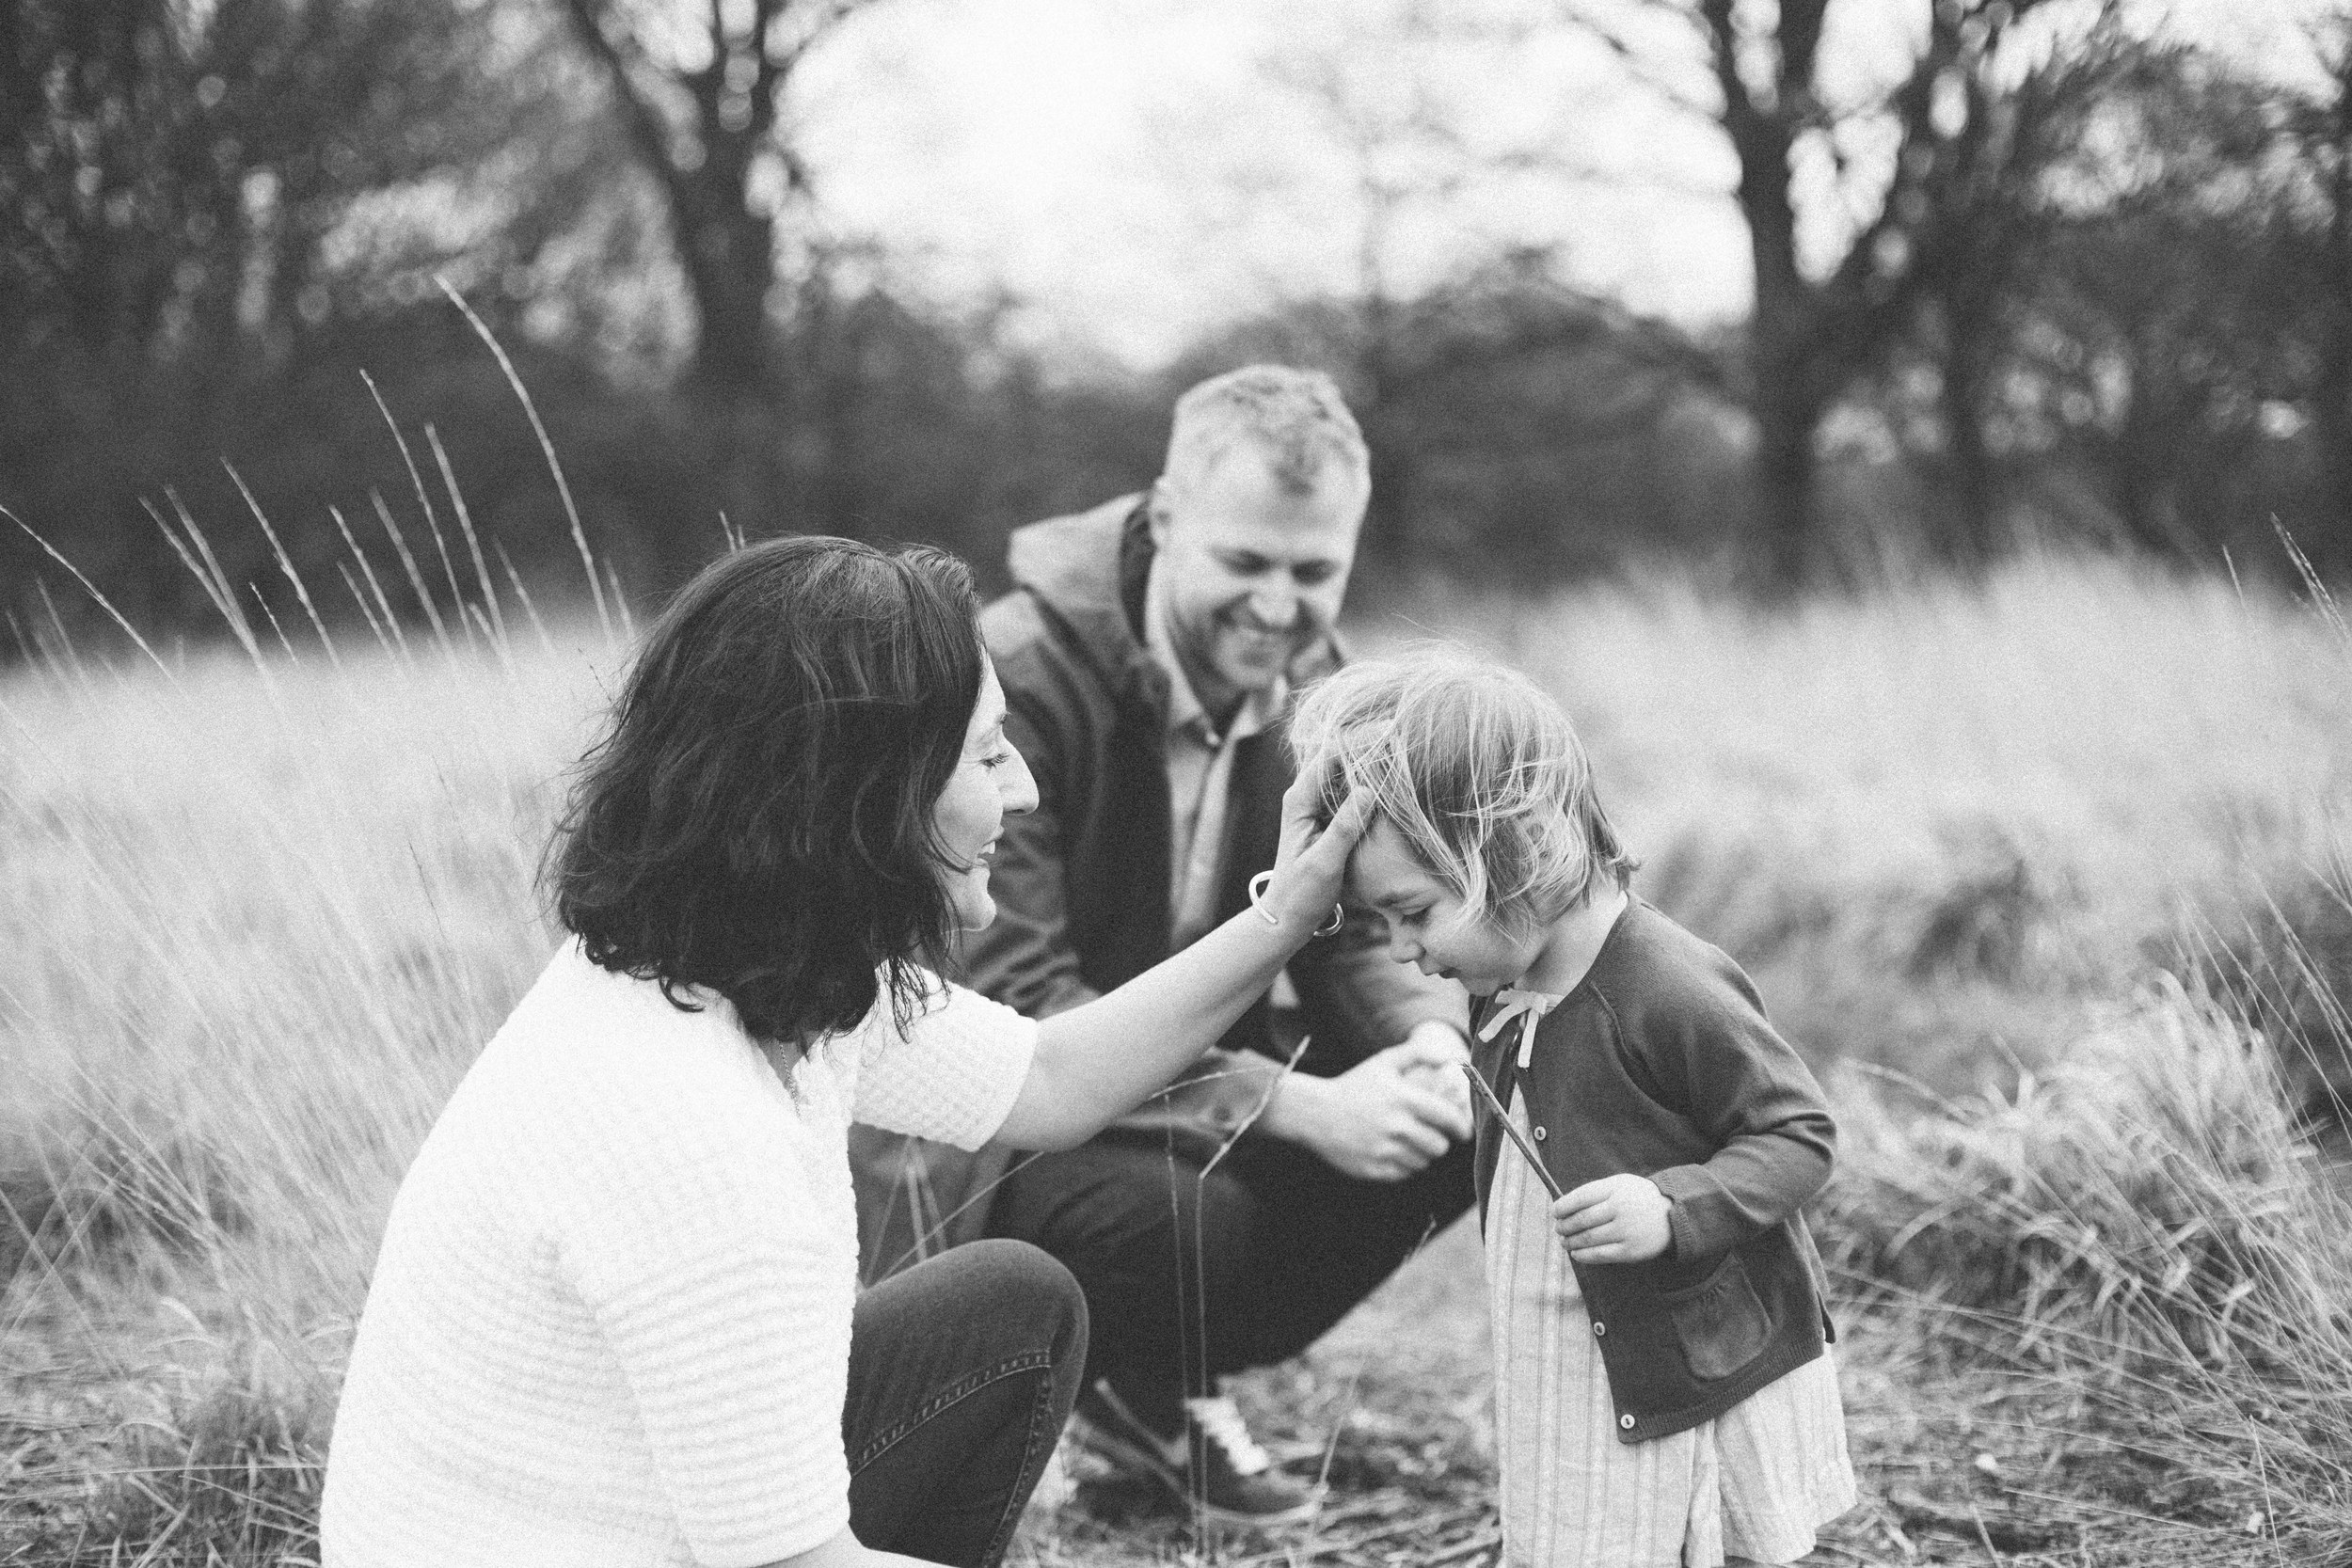 Littlekin_photography_family_richmond_fran-32.jpg